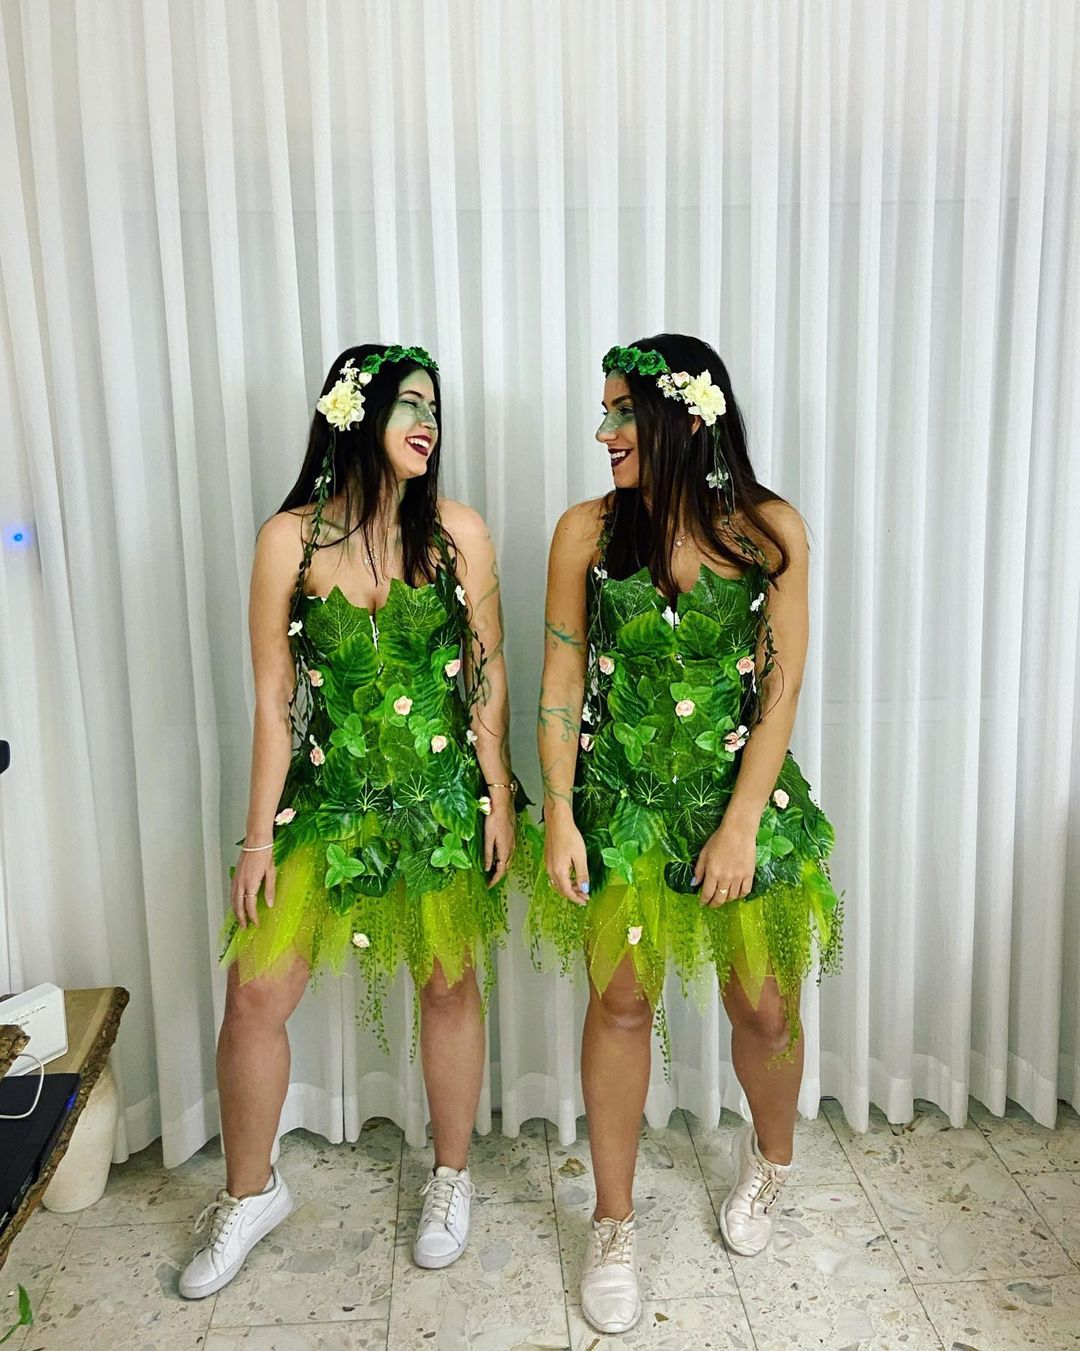 Ethereal Elves for Best Halloween Costumes for Best Friends